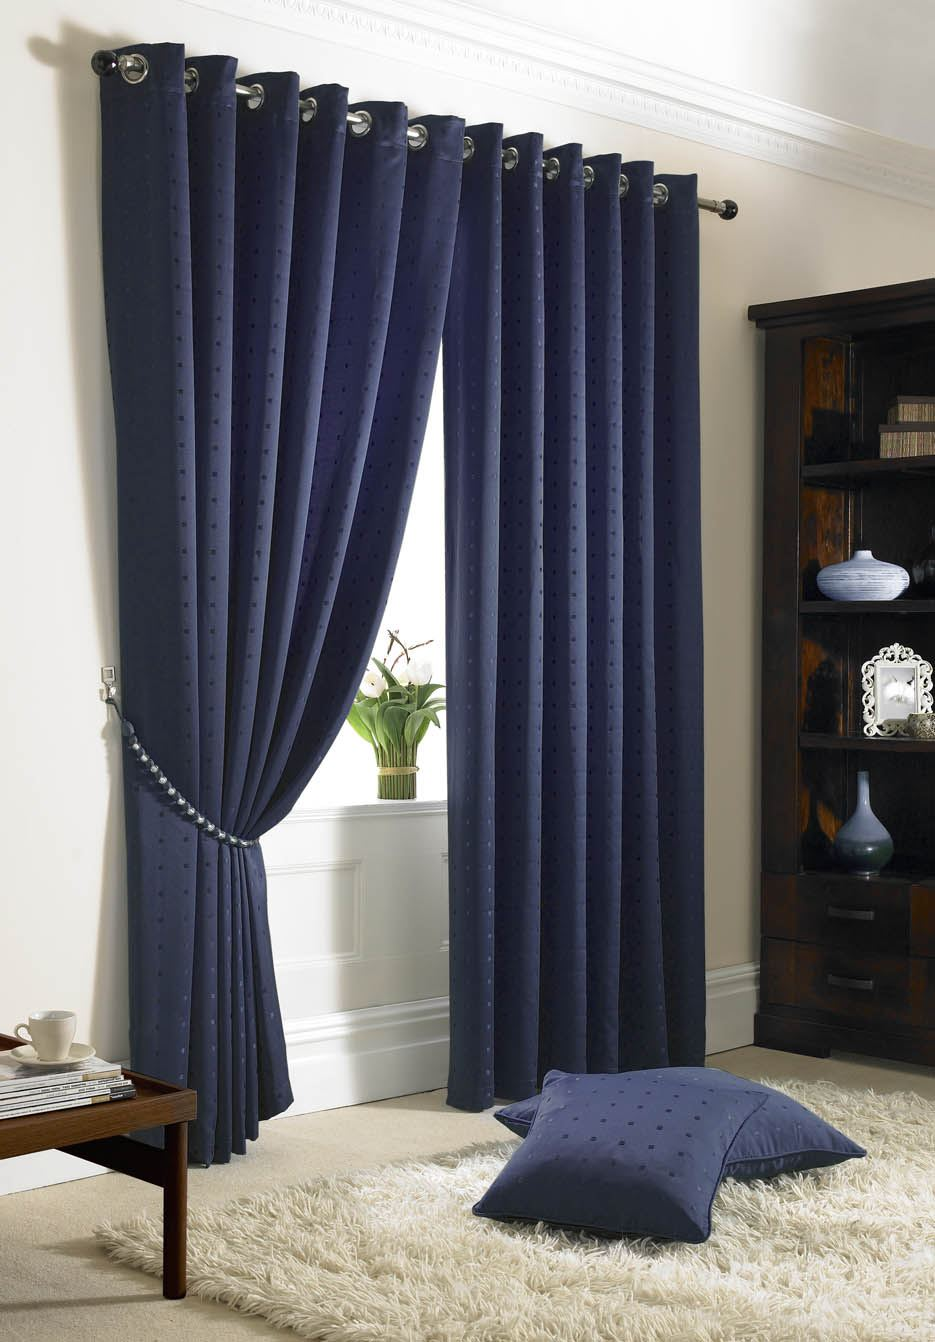 Jacquard Check Navy Blue Lined Ring Top Eyelet Curtains Drapes 6 Sizes Ebay